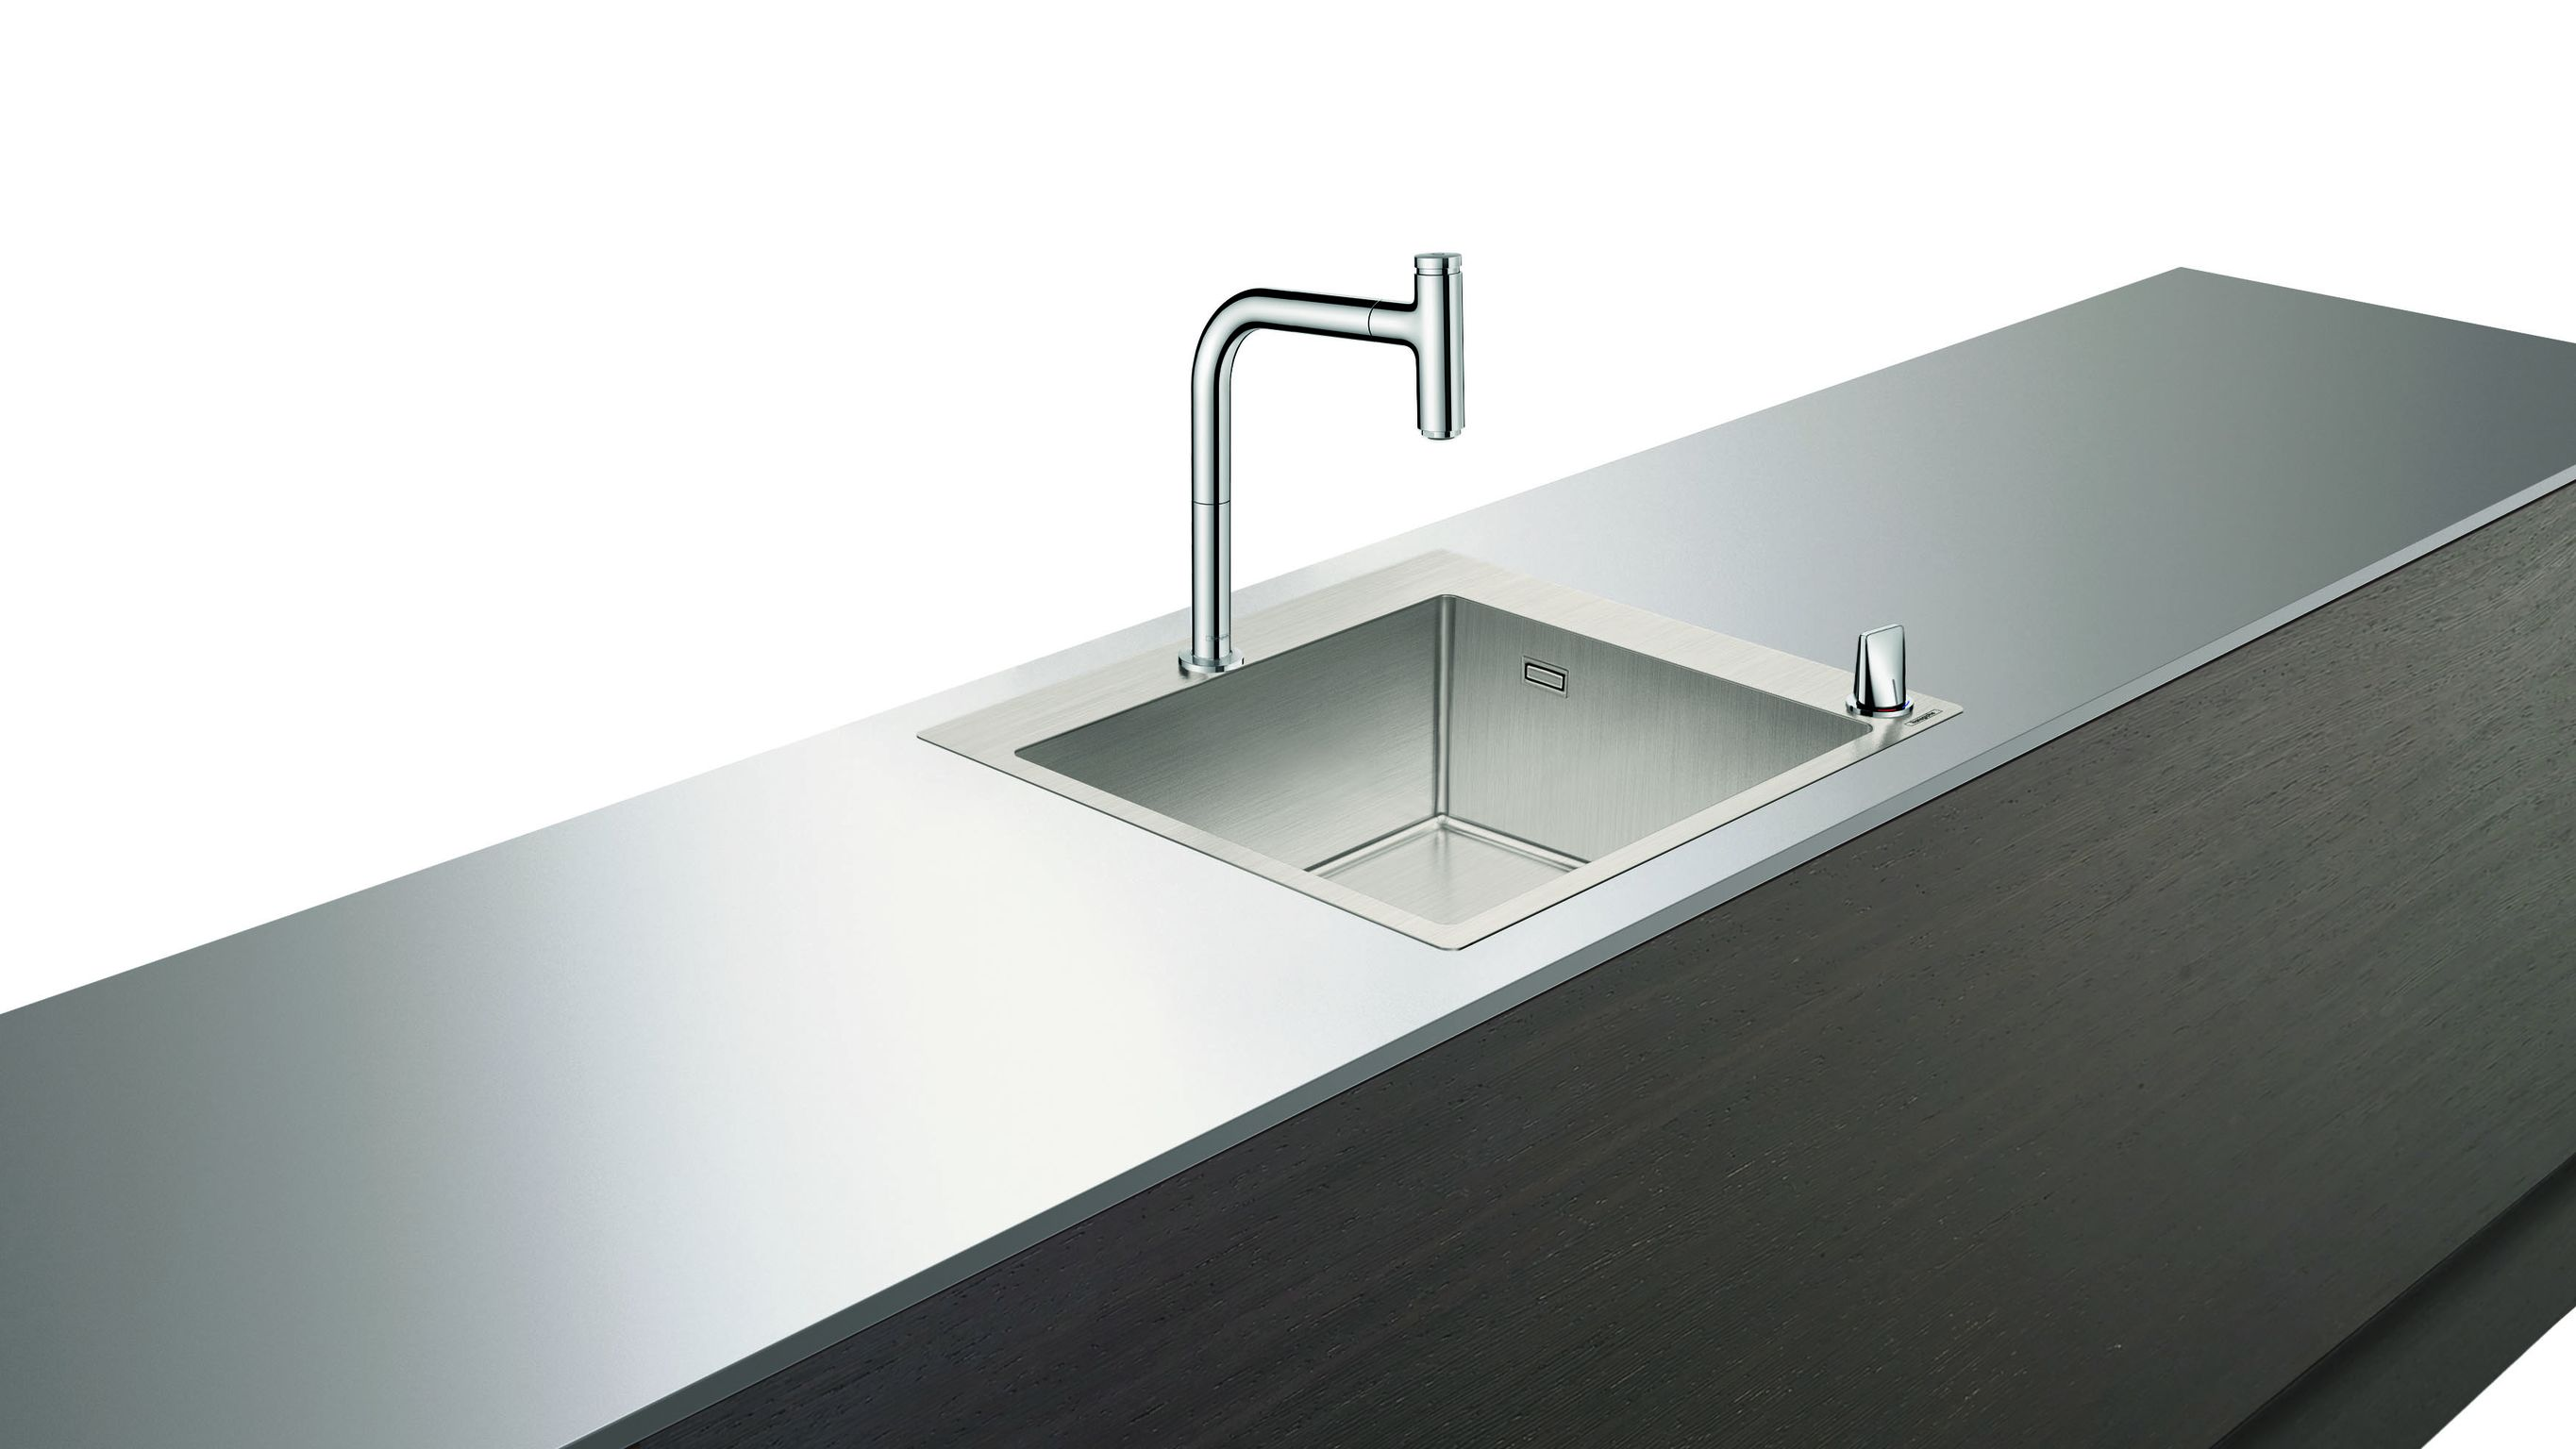 hansgrohe sink combi C71-F450-06 | iF WORLD DESIGN GUIDE